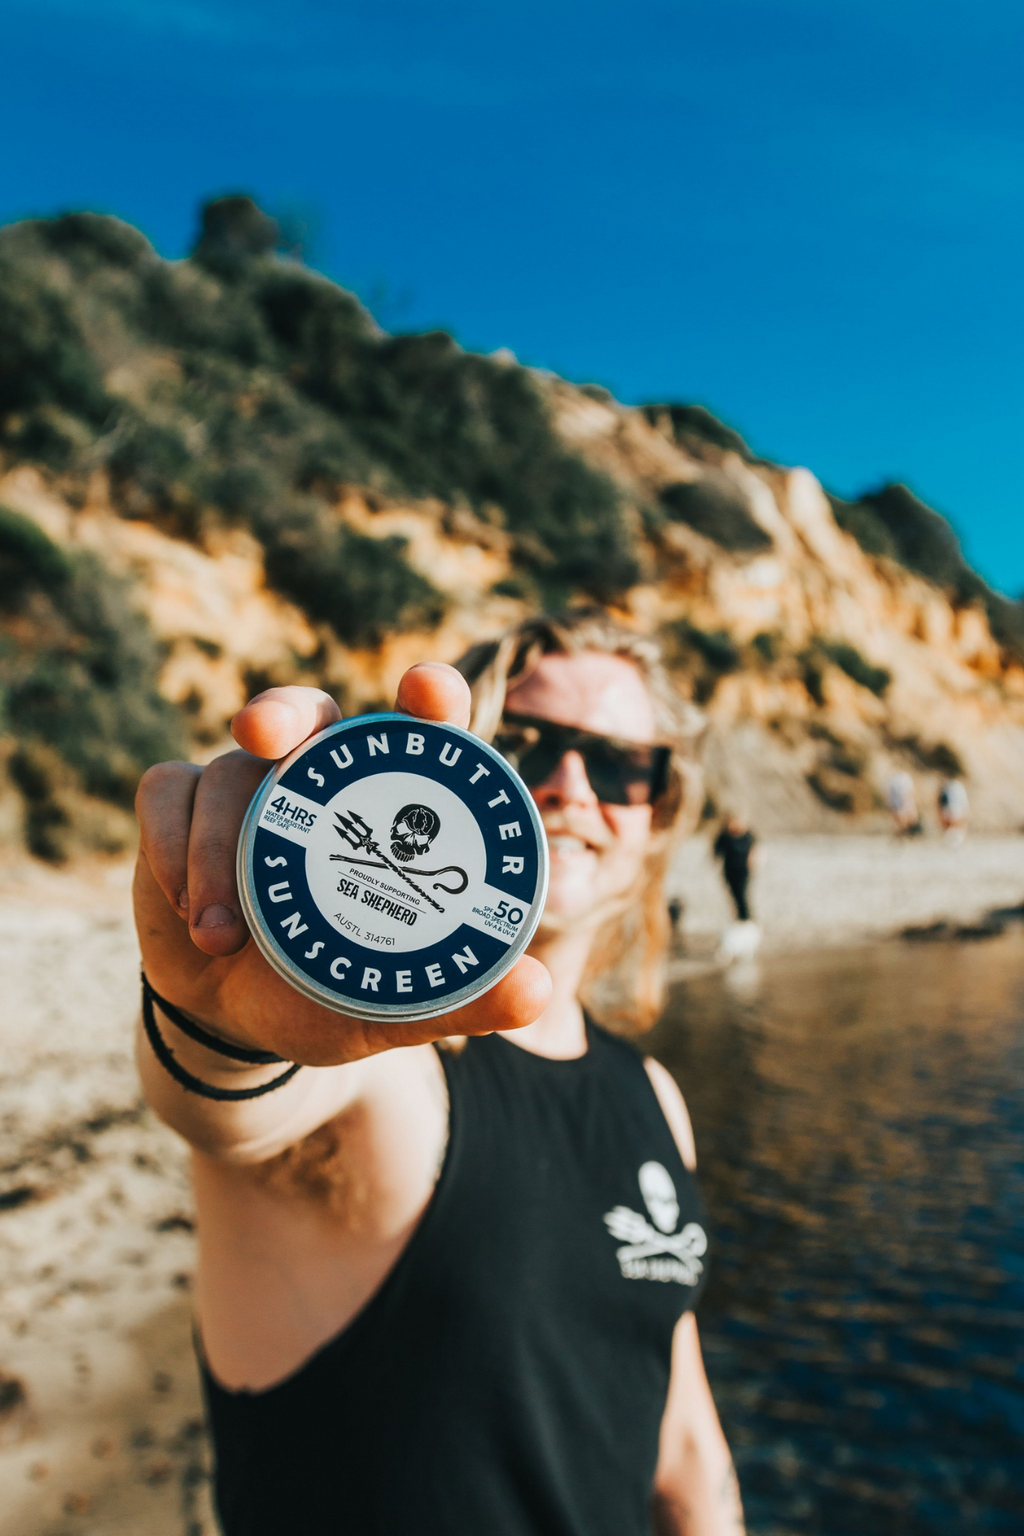 sunbutter non-toxic natural australian made Sea Shepherd x SunButter SPF50 Sunscreen 1